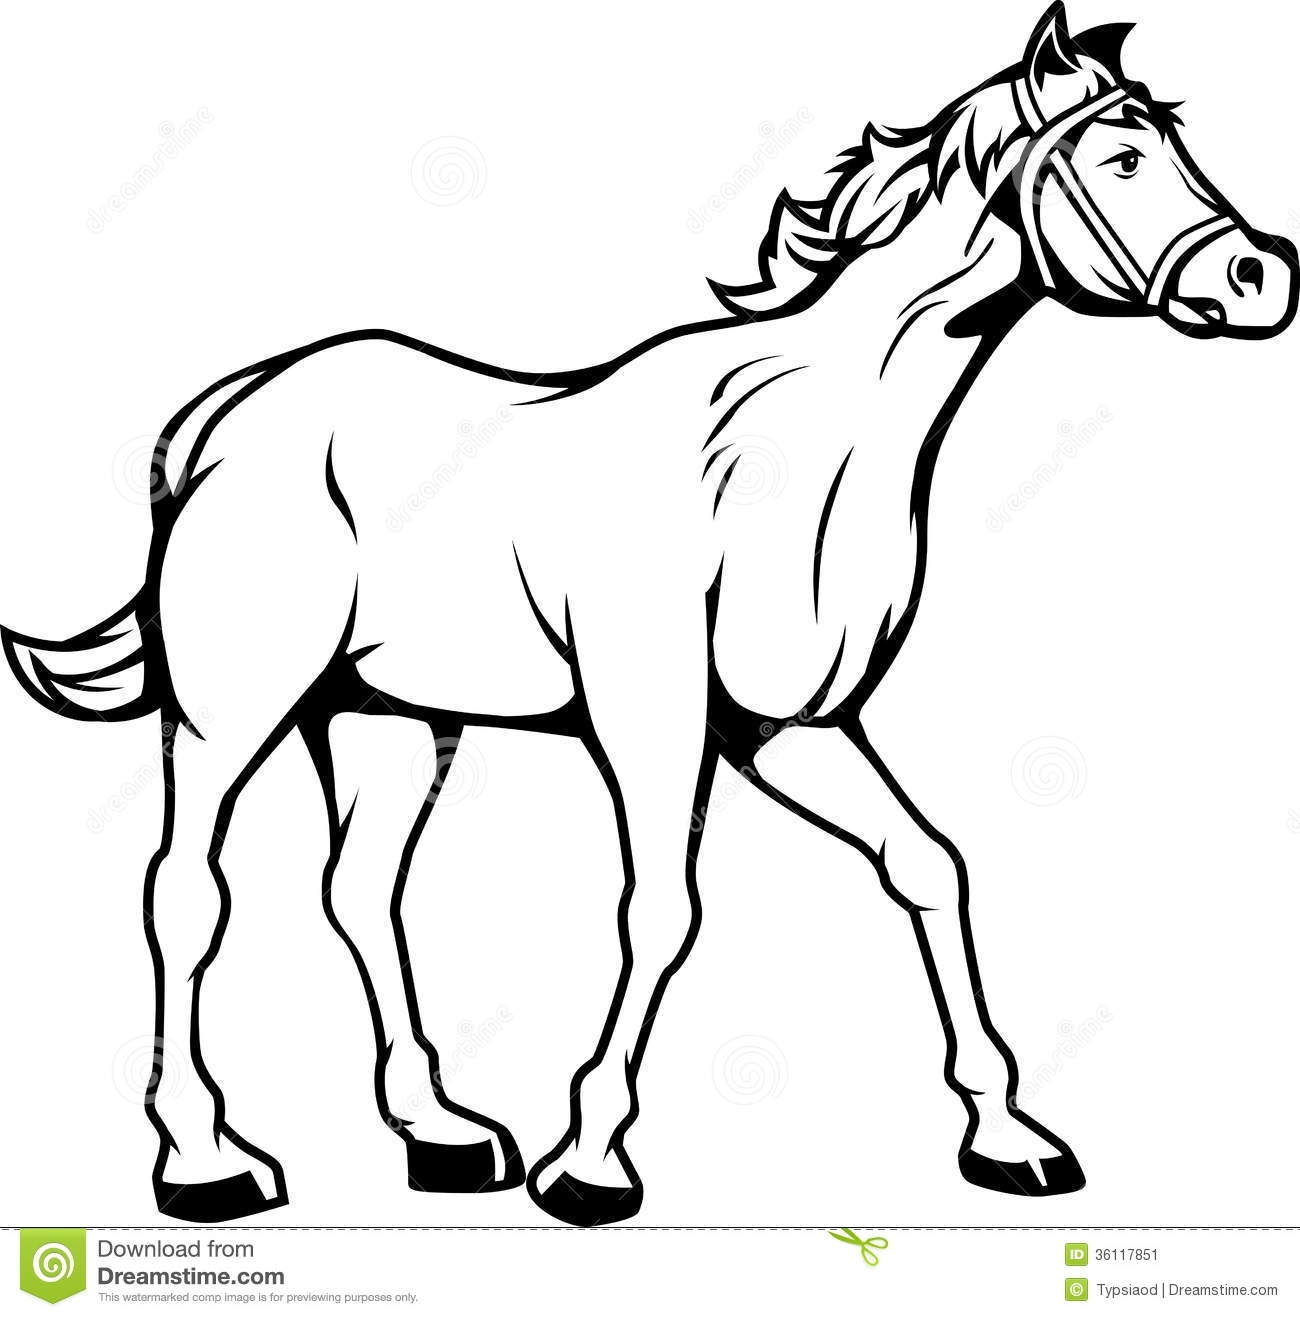 Black and white clipart horse clipart royalty free library Horse Drawing Black And White | Free download best Horse Drawing ... clipart royalty free library